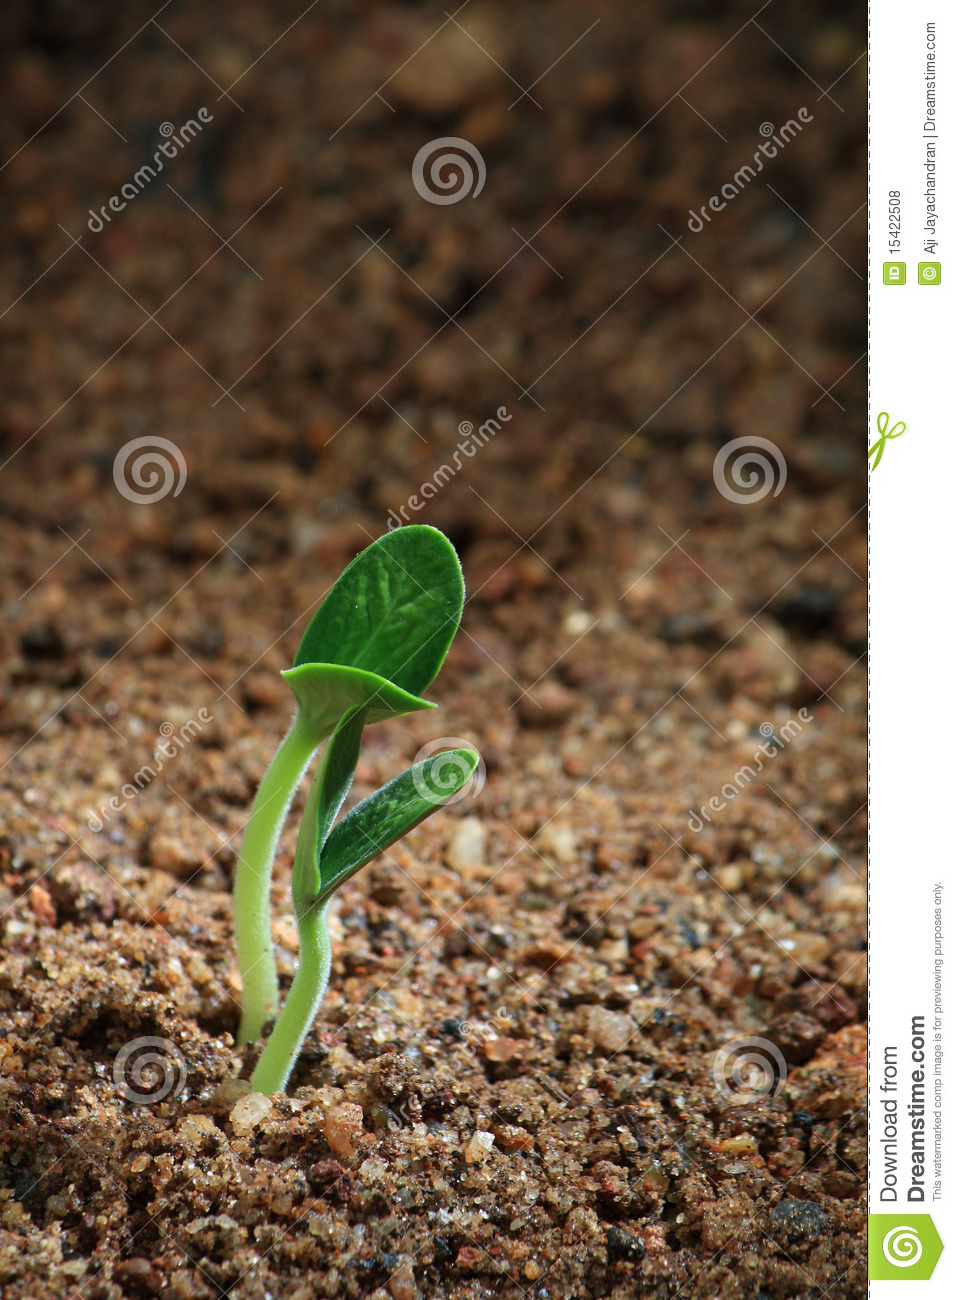 A seedling on soil